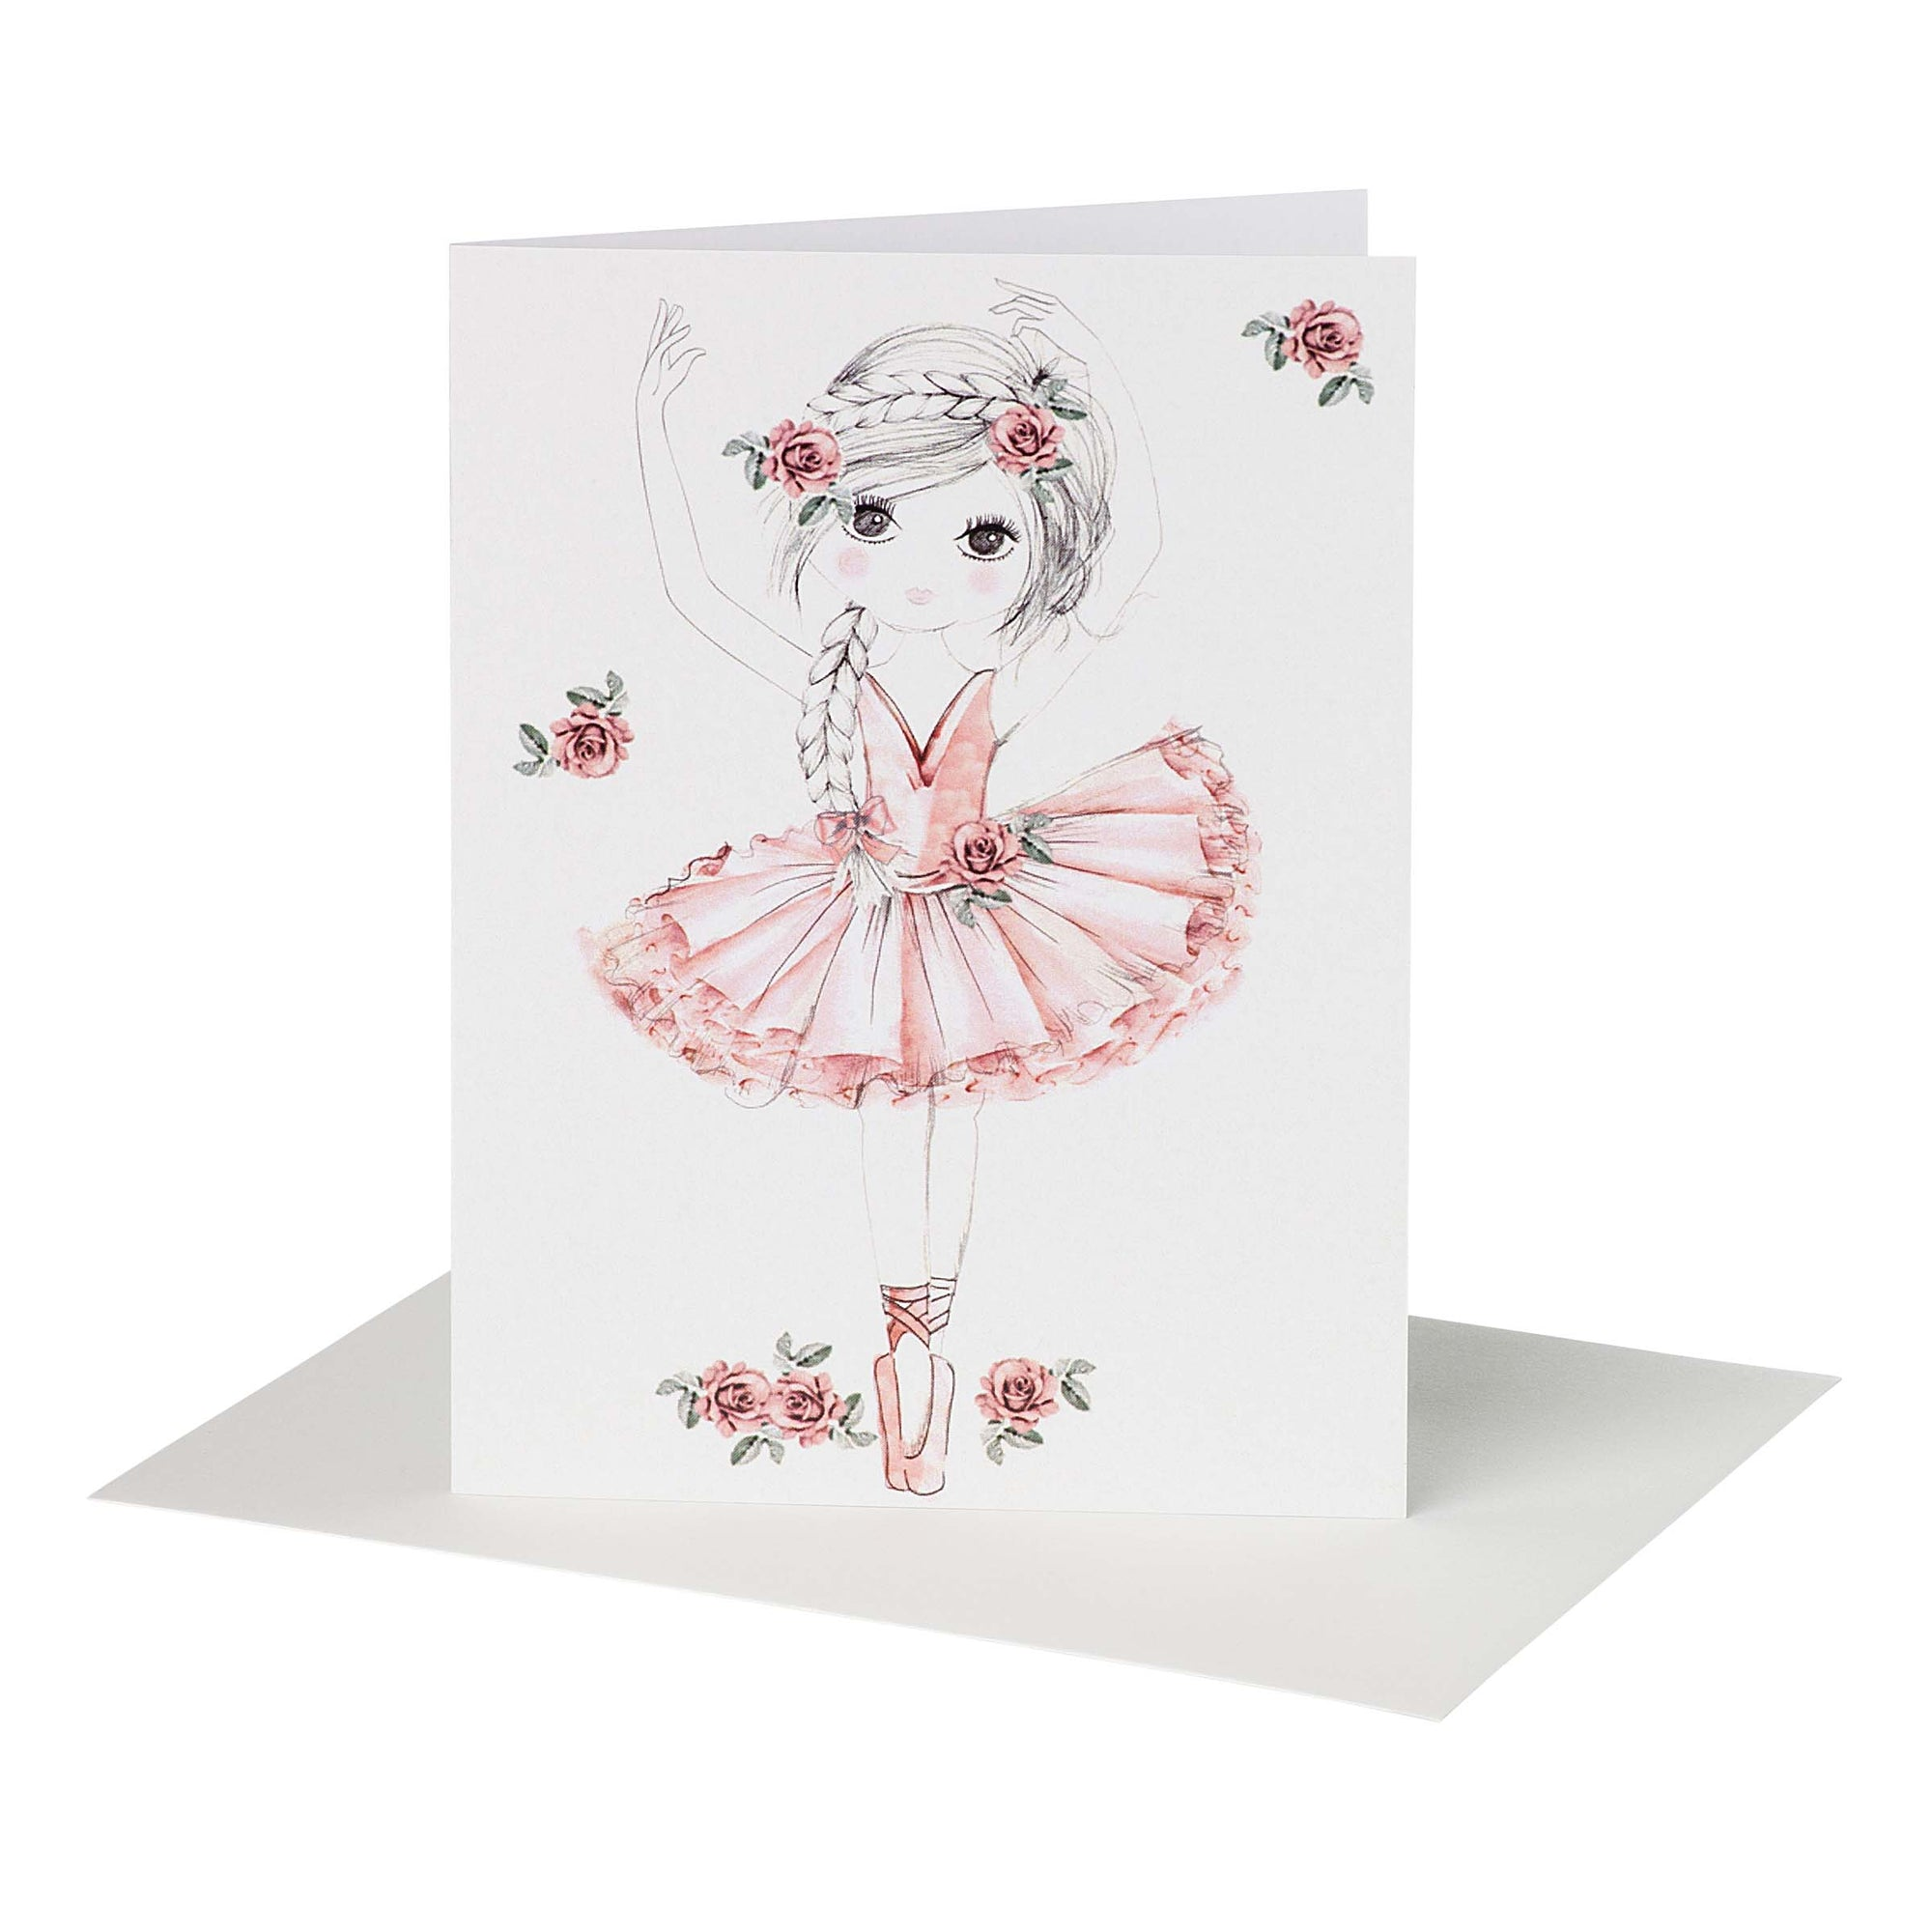 Buy Ballerina Tutu Greeting Card - Designer Kidz | Special Occasions, Party Wear & Weddings  | Sizes 000-16 | Little Girls Party Dresses, Tutu Dresses, Flower Girl Dresses | Pay with Afterpay | Free AU Delivery Over $80